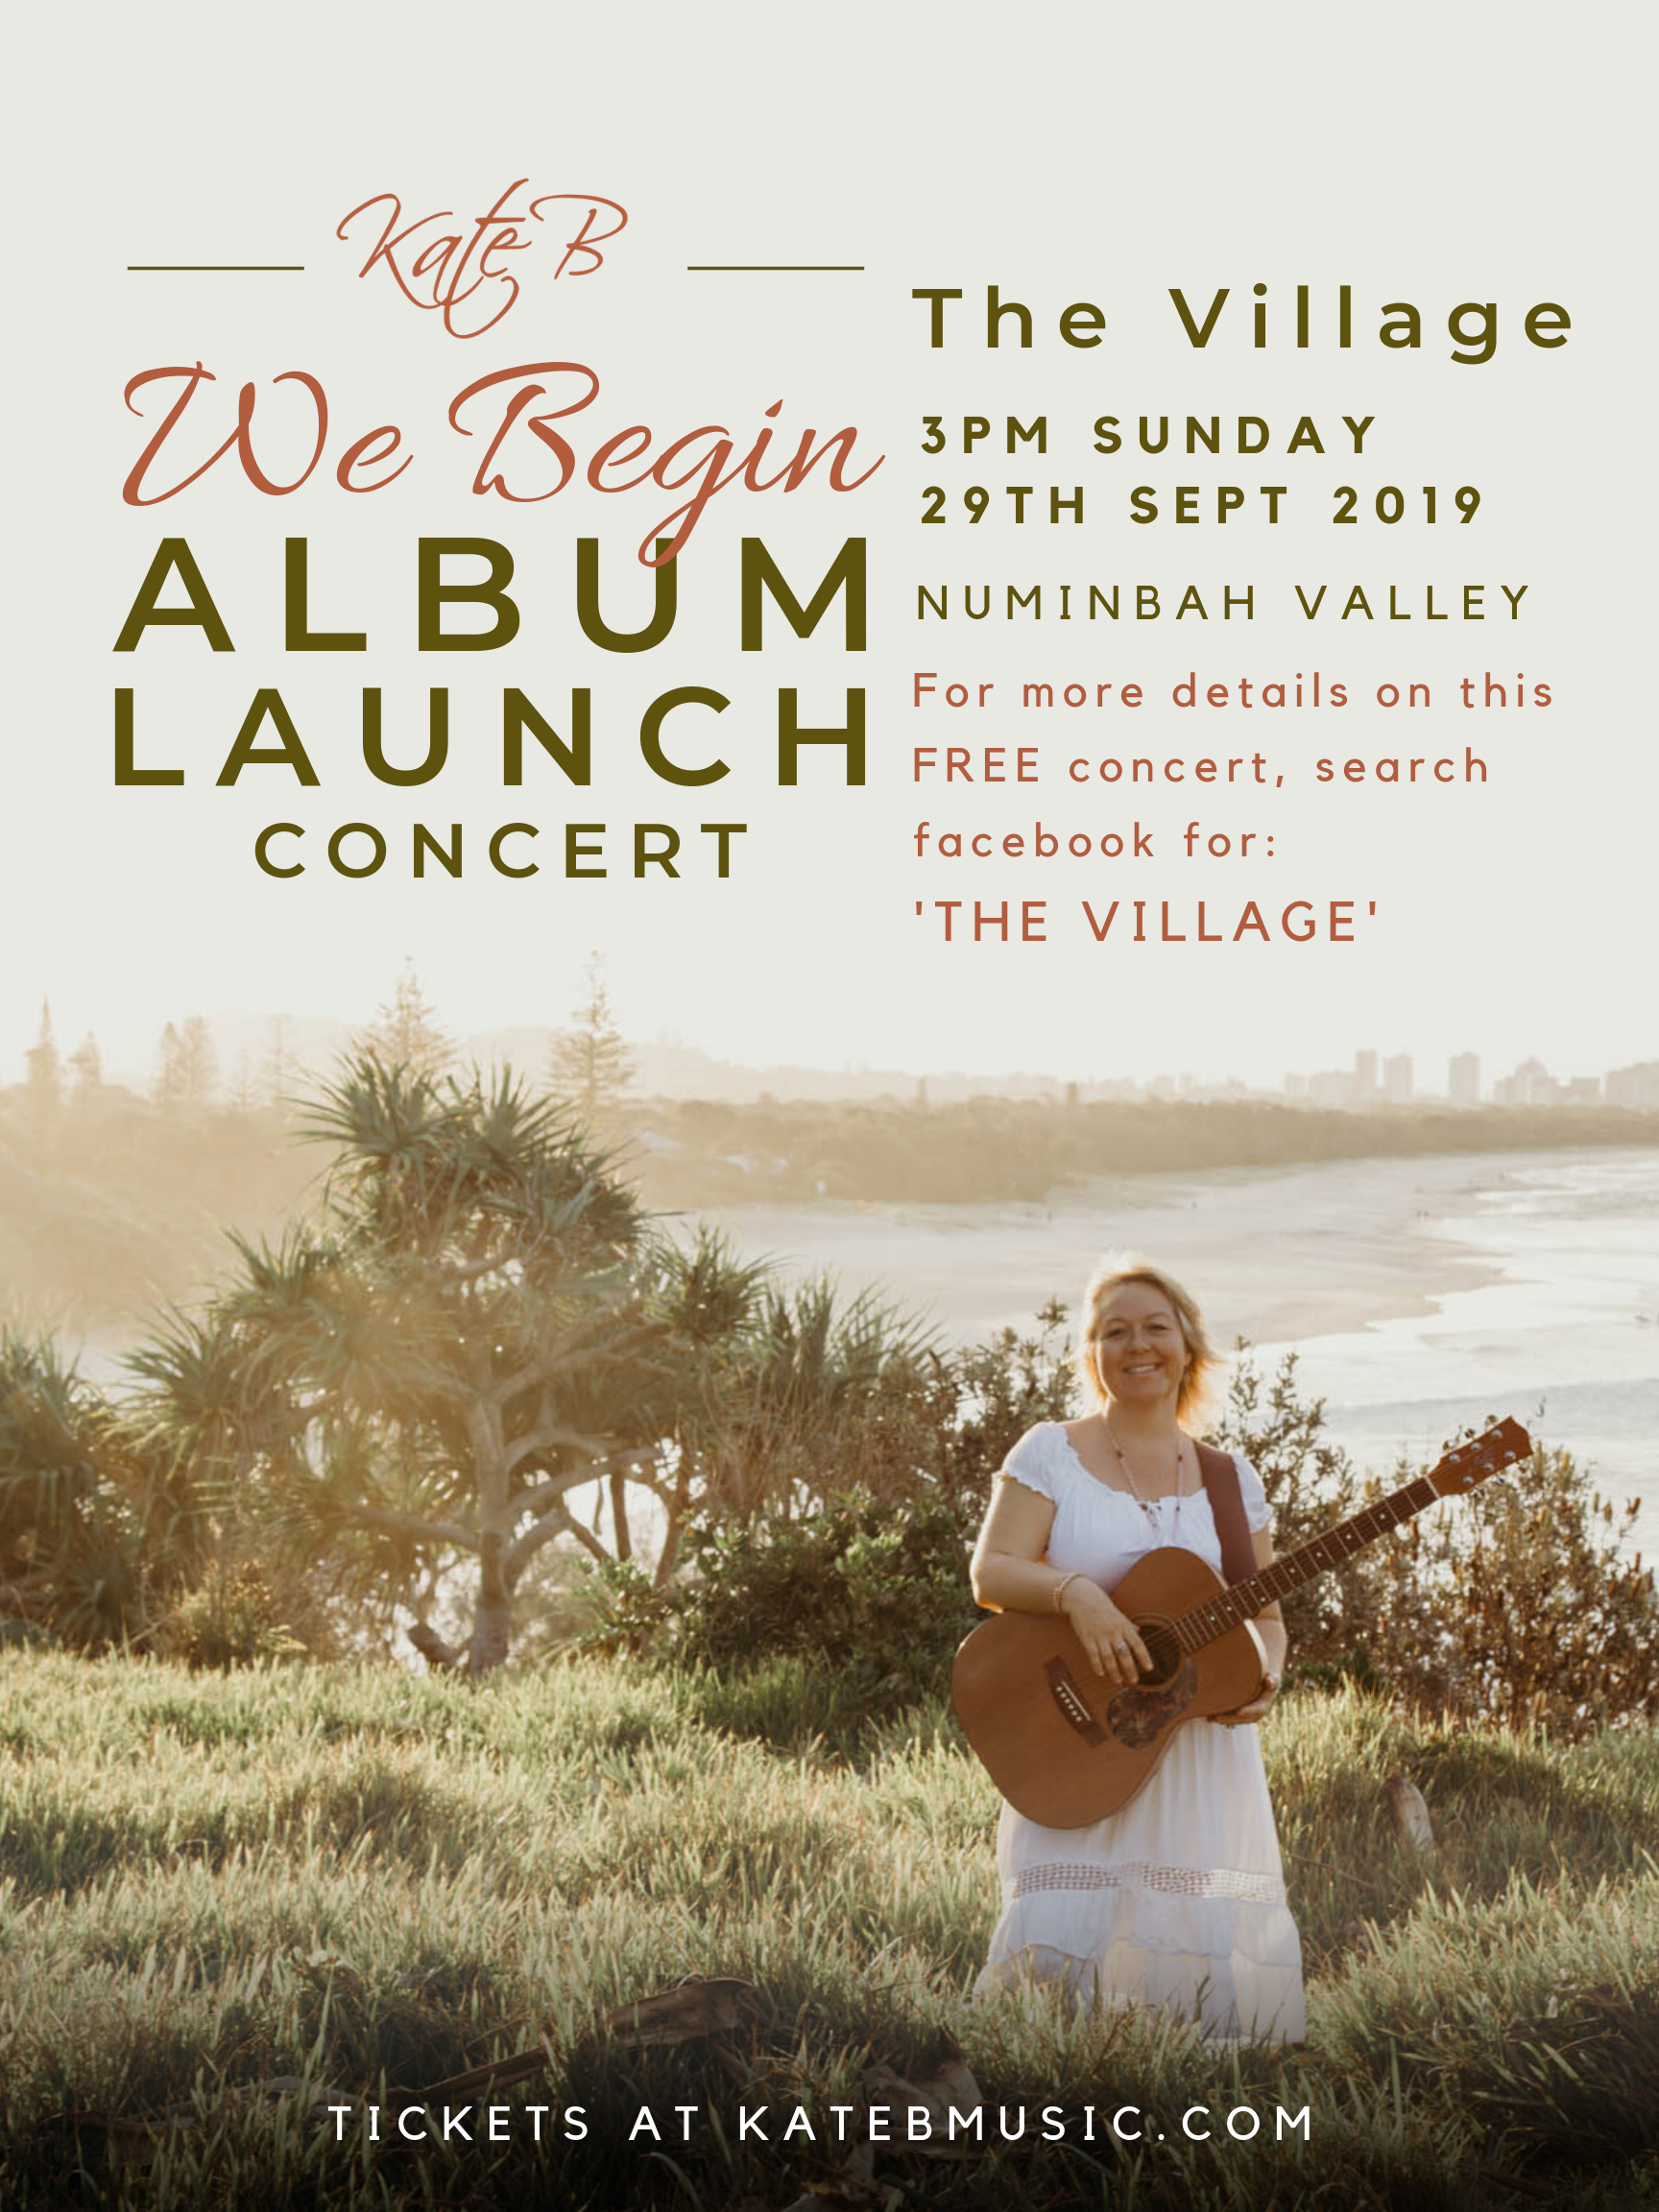 We Begin Album Launch - The Village